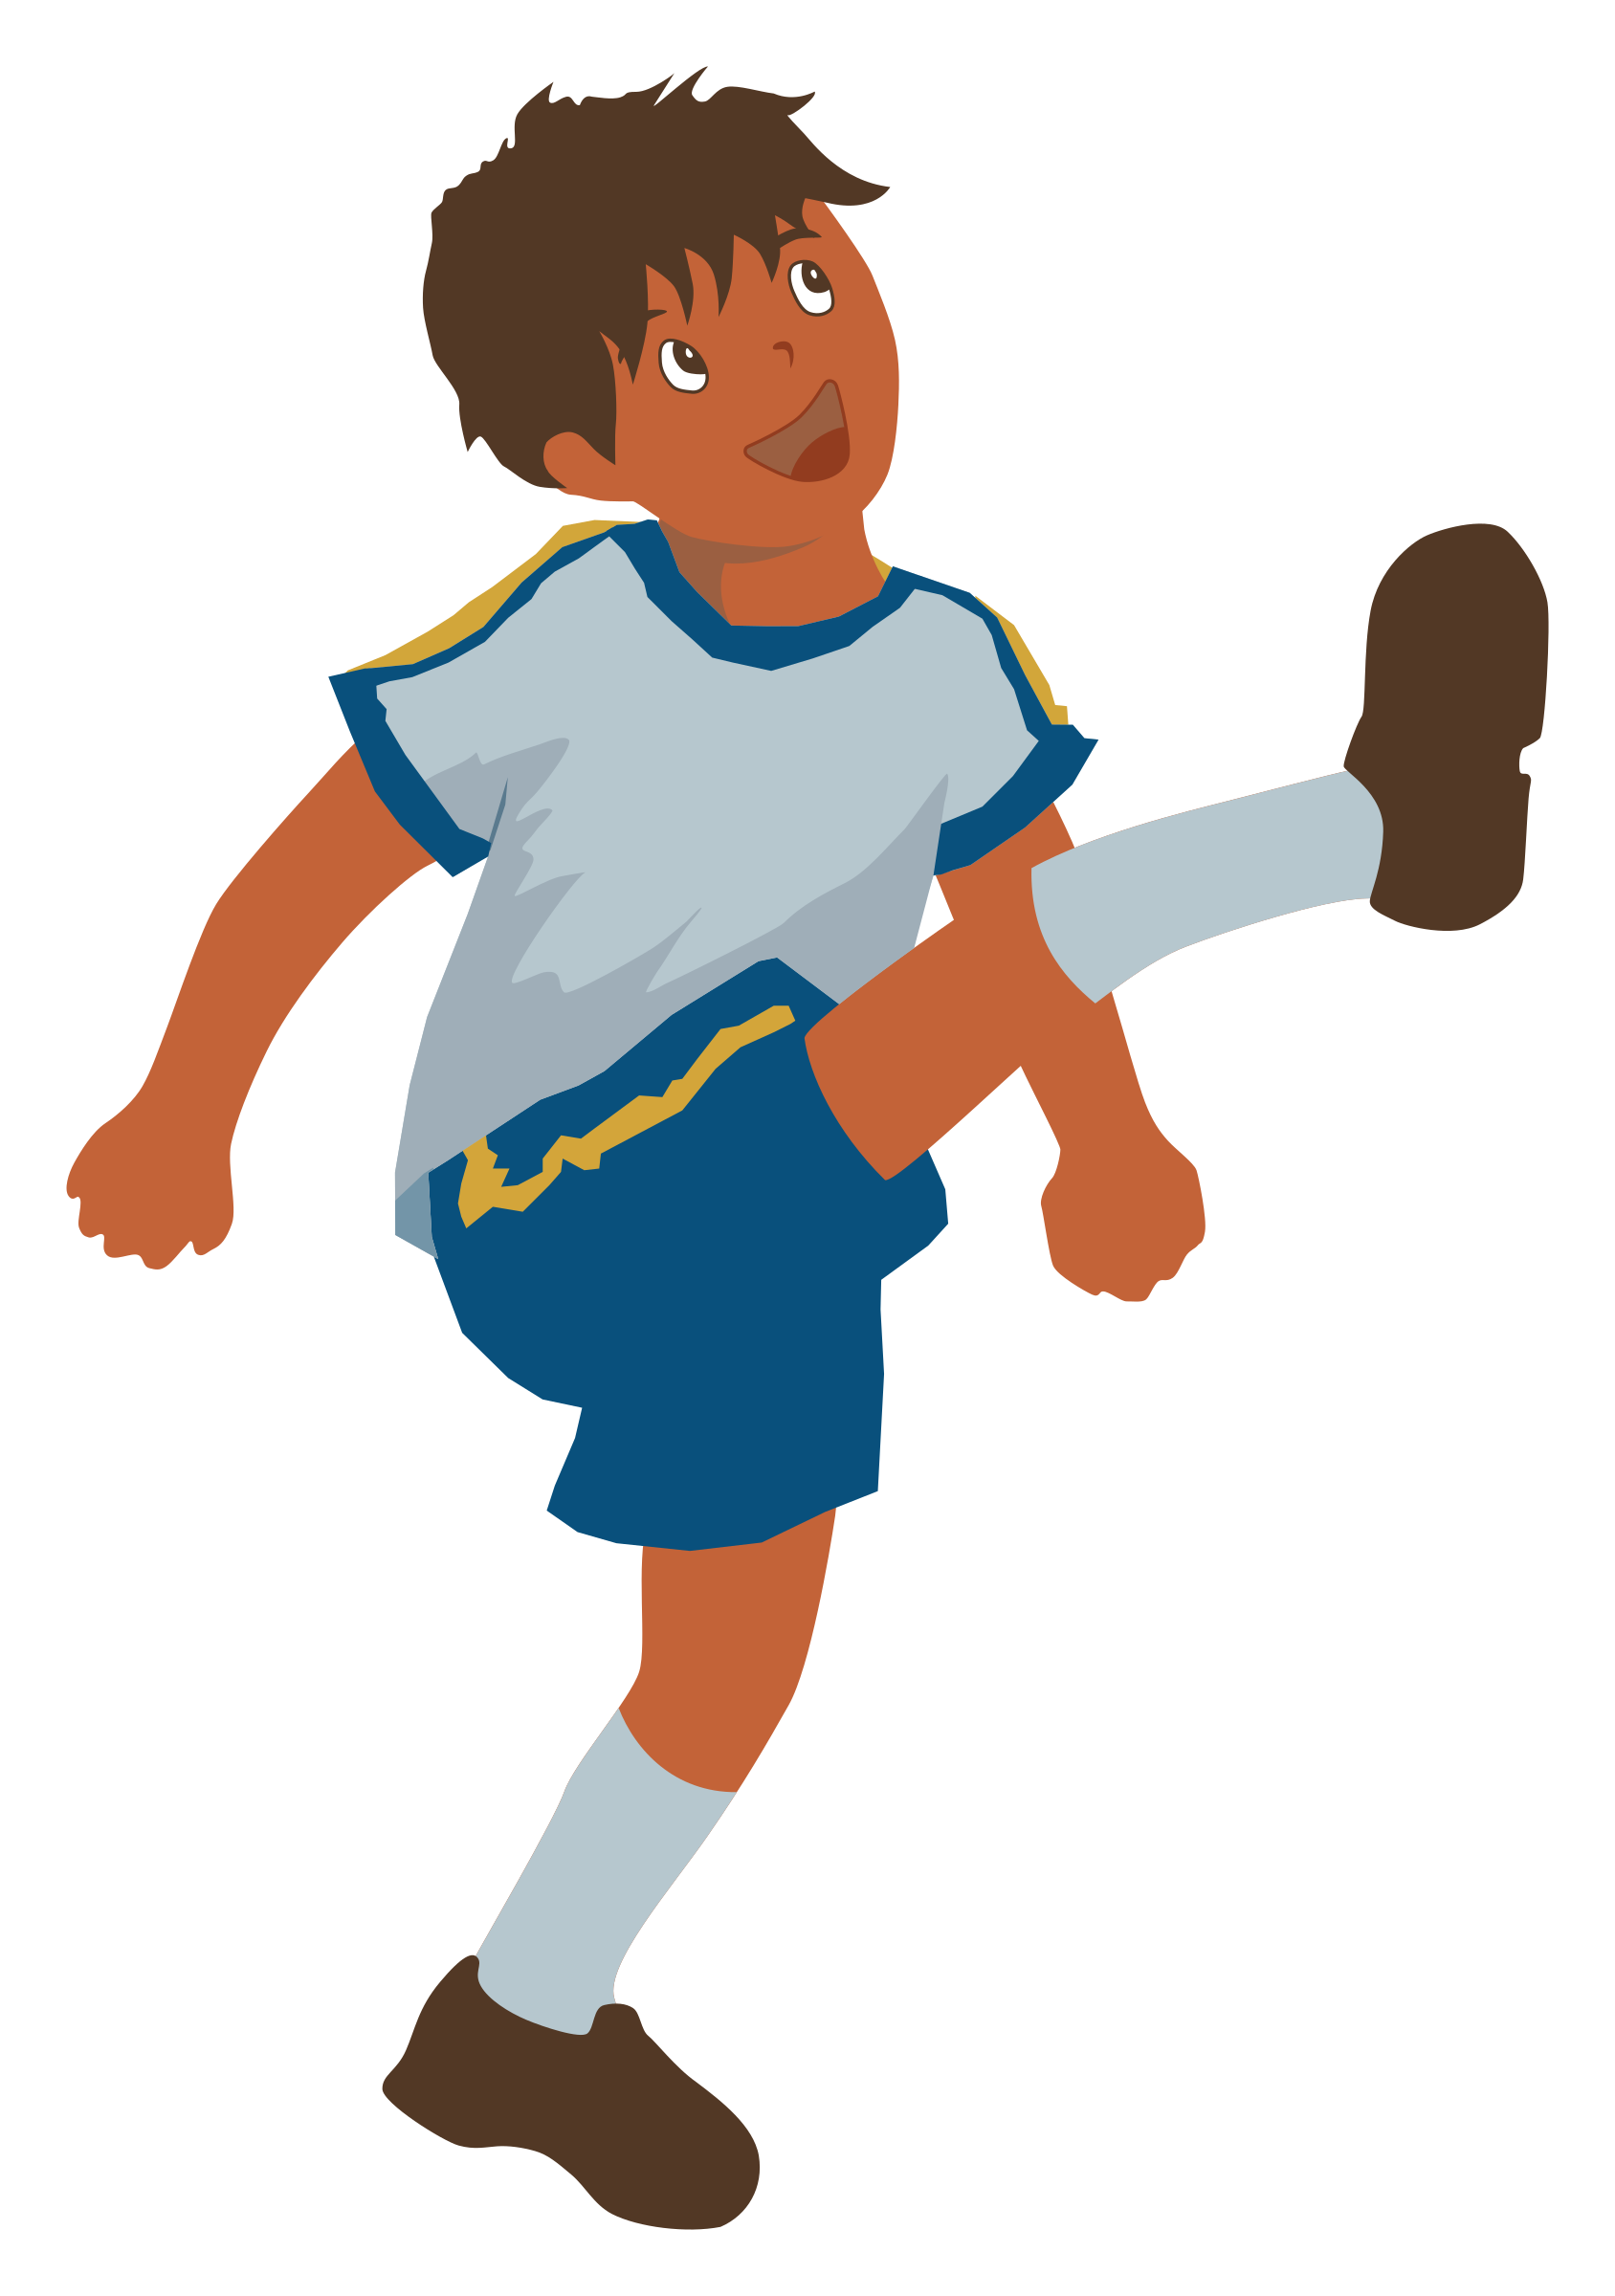 Kickball clipart kick, Kickball kick Transparent FREE for.